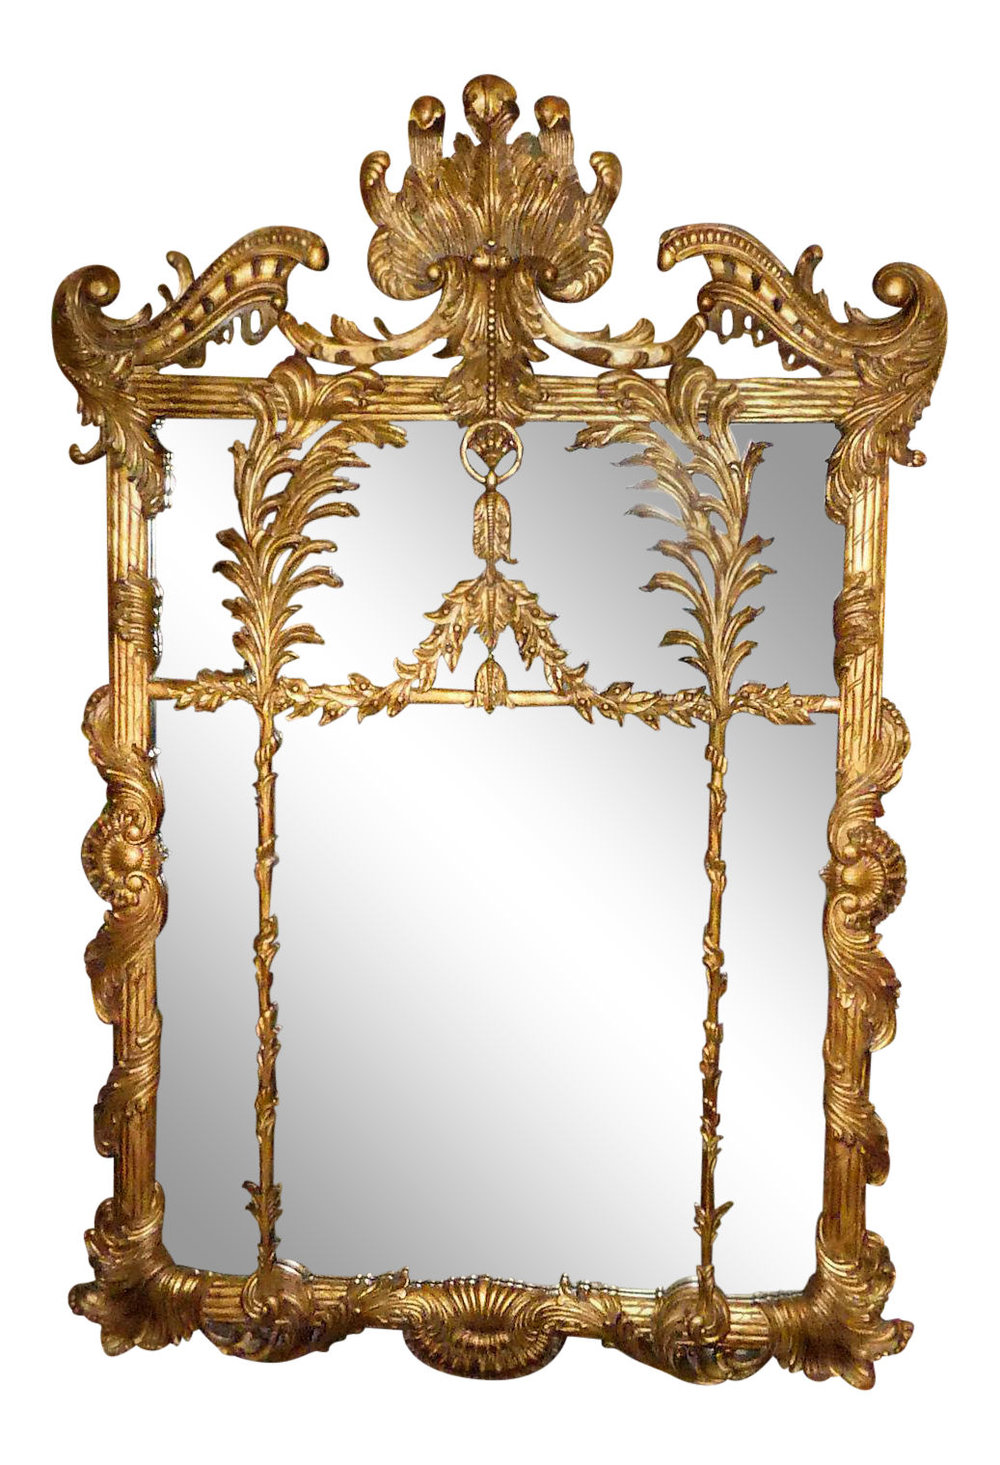 Sold - LaBarge Rococo Gilt Wood Mirror